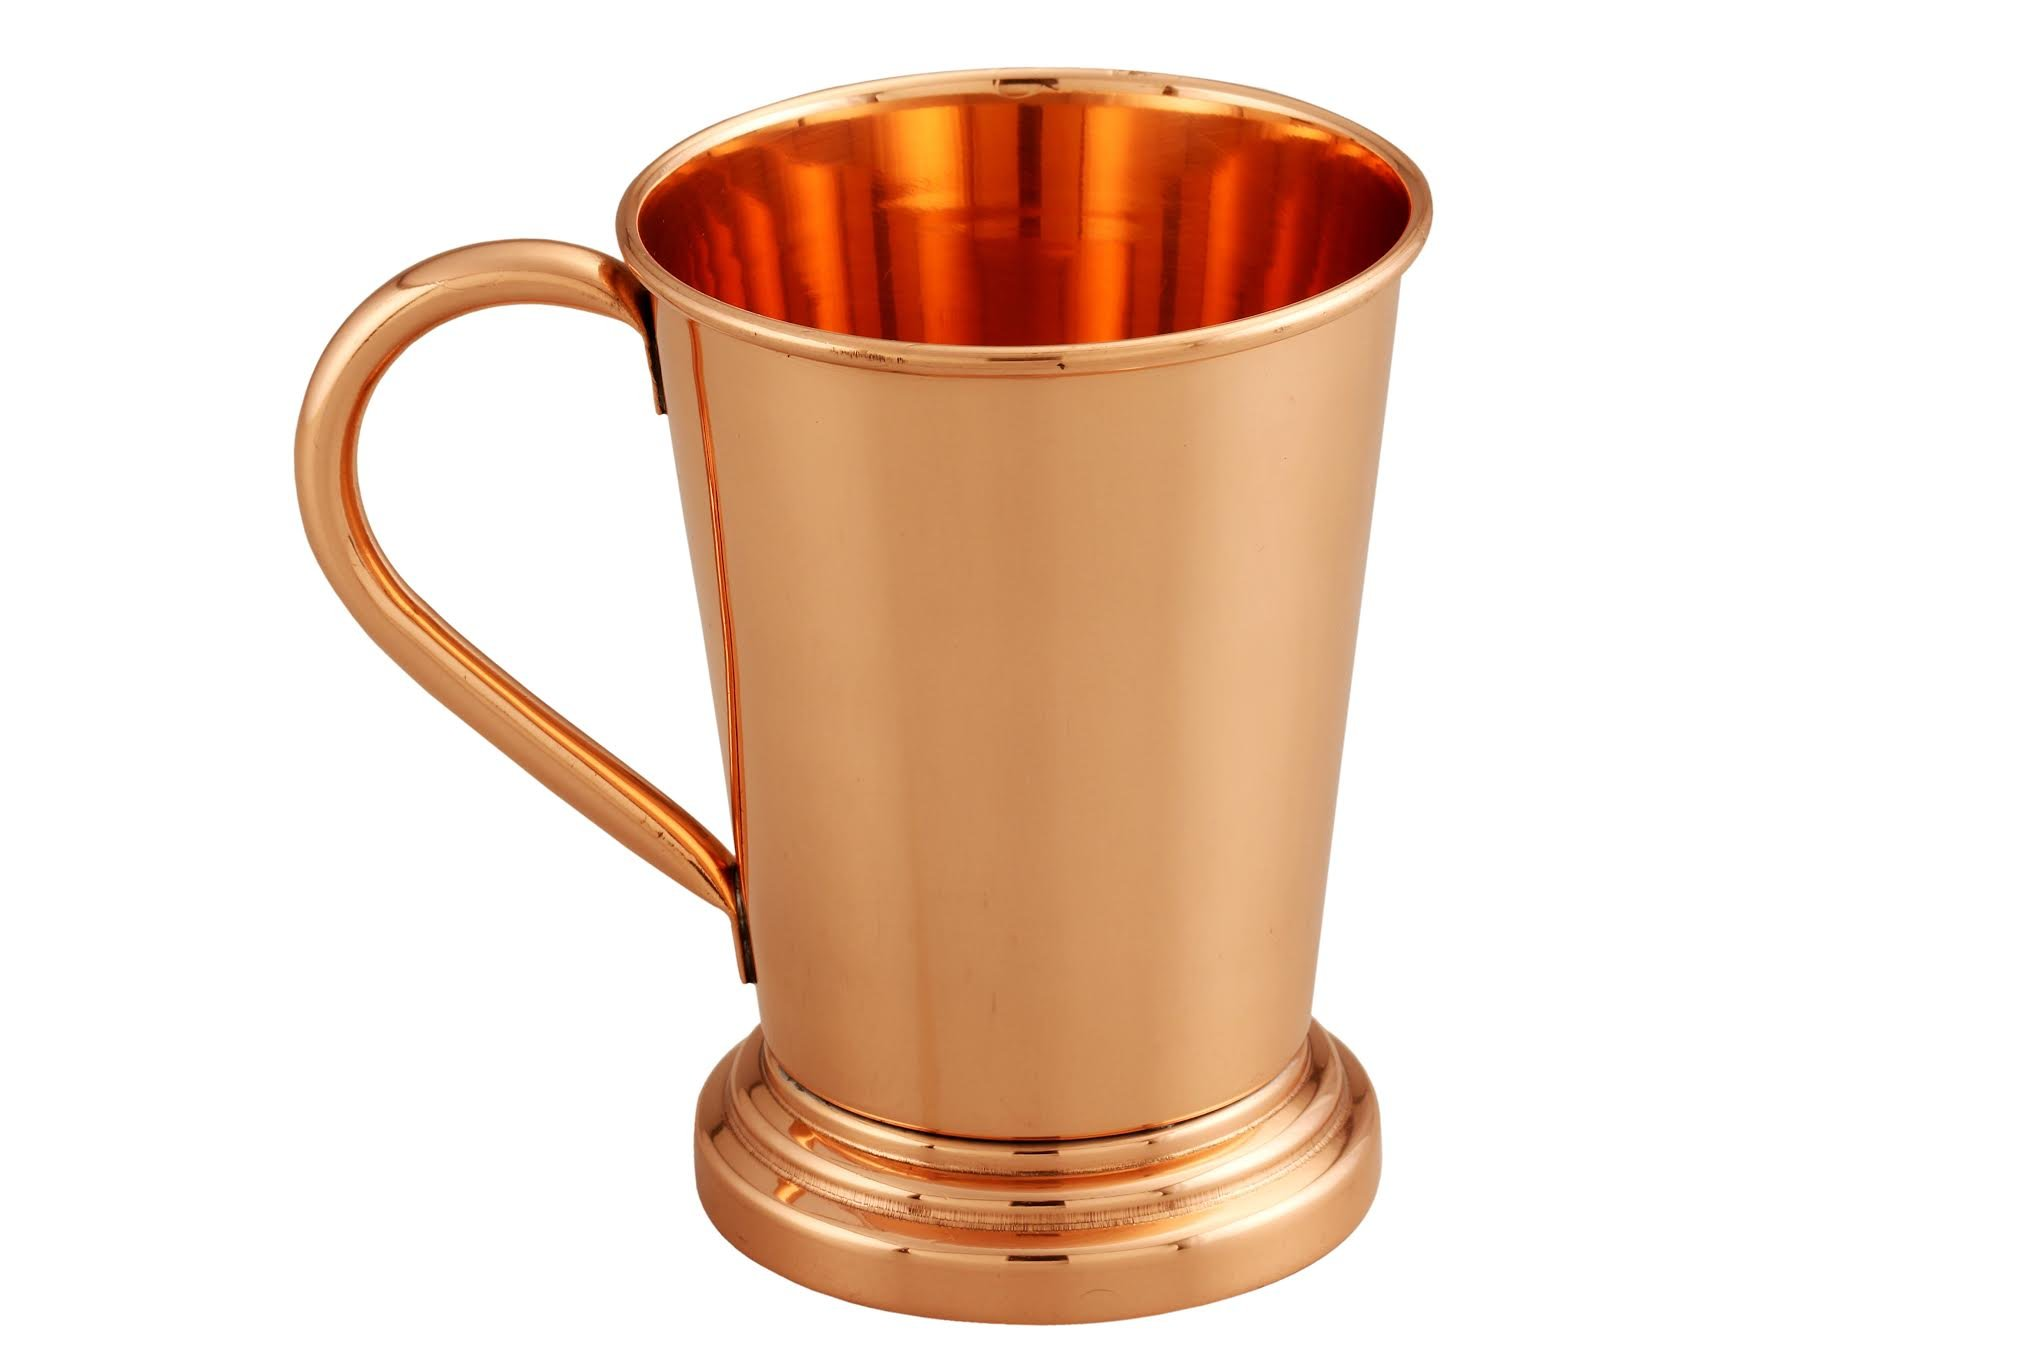 Melange 100% Authentic Copper Artisan Collection Moscow Mule Mug, Size-16 Oz, Set of 4 Mugs by Melange